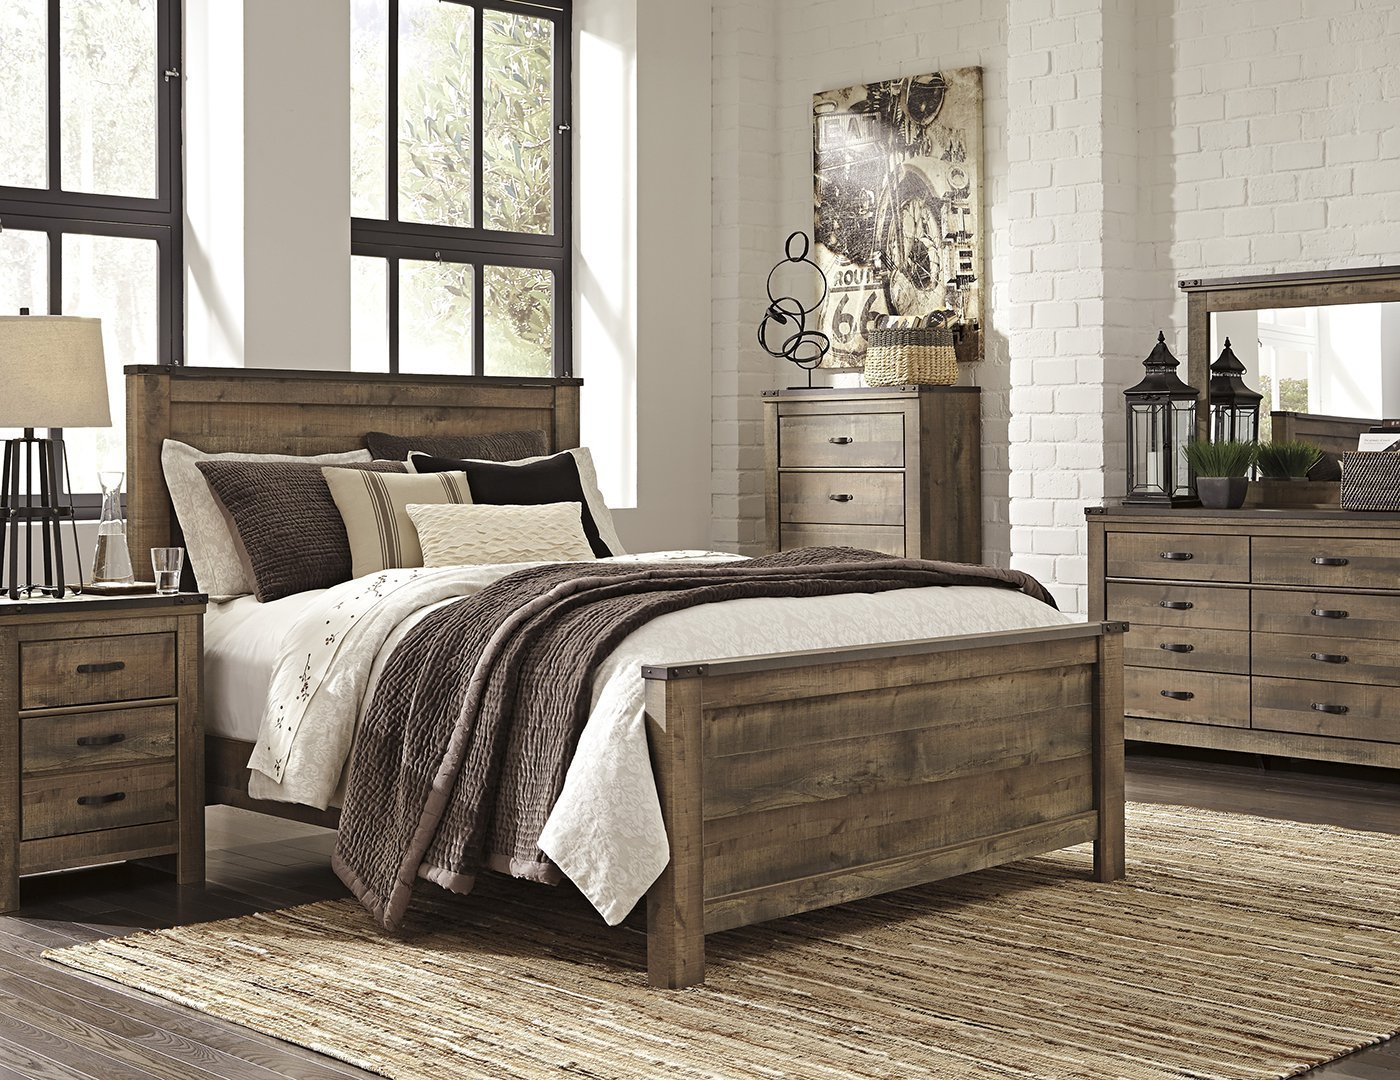 Best Queen Bedroom Sets Cheap Under 500 Brantley 5Piece Queen Bedroom Set Rsynews Com With Pictures